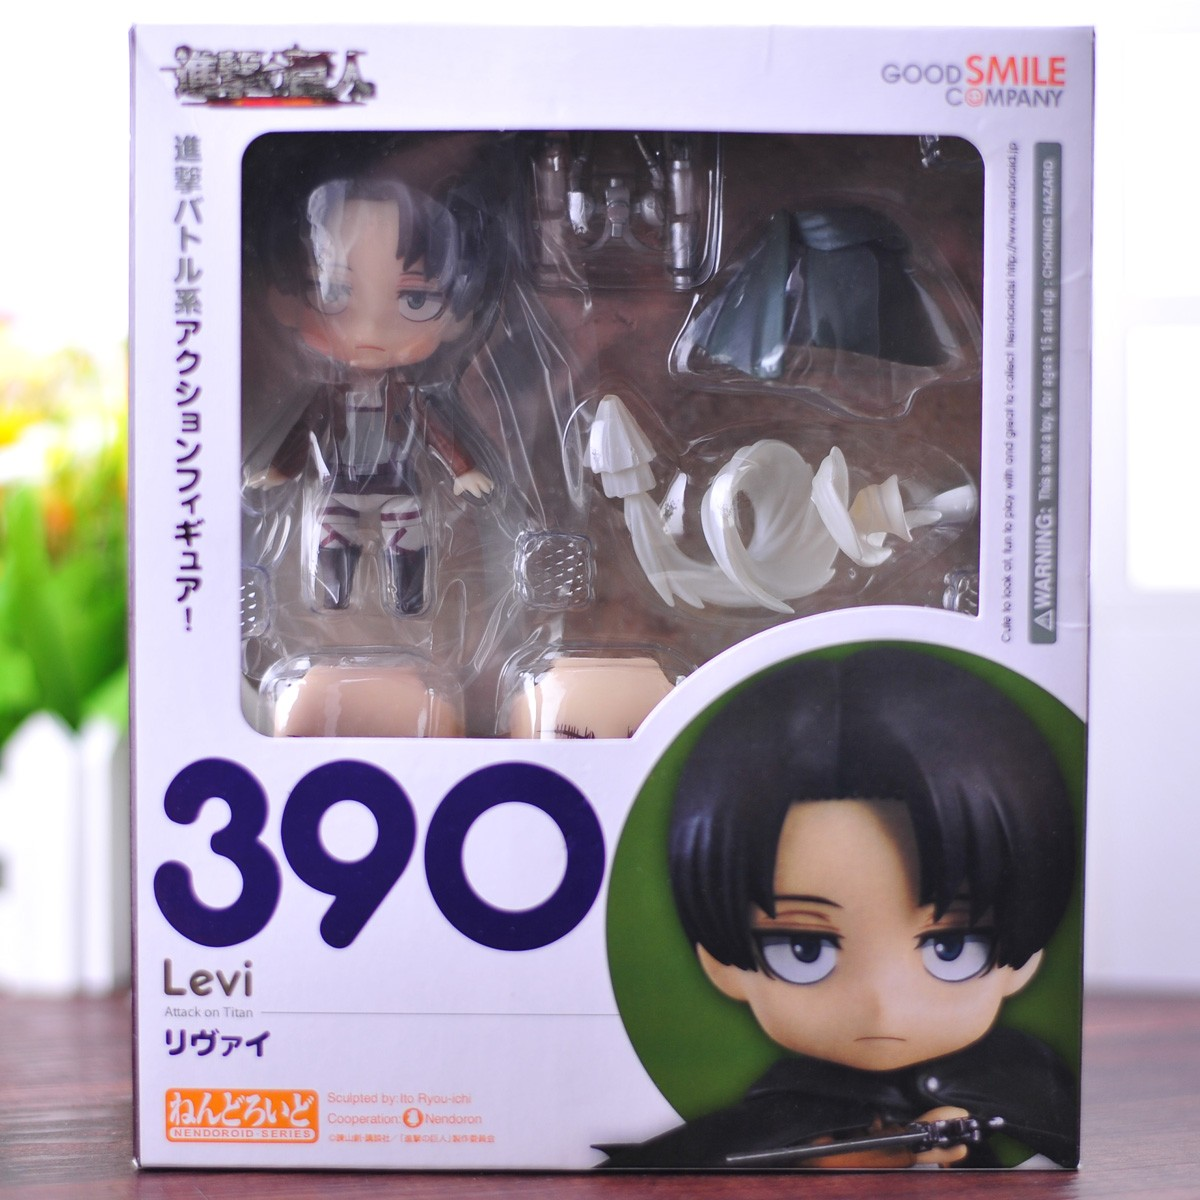 Gsc390 Levi Clay Doll Attack On Titan Action Model Toys For Children Eren Yeager Levi Ackerman - Attack On Titan Shop